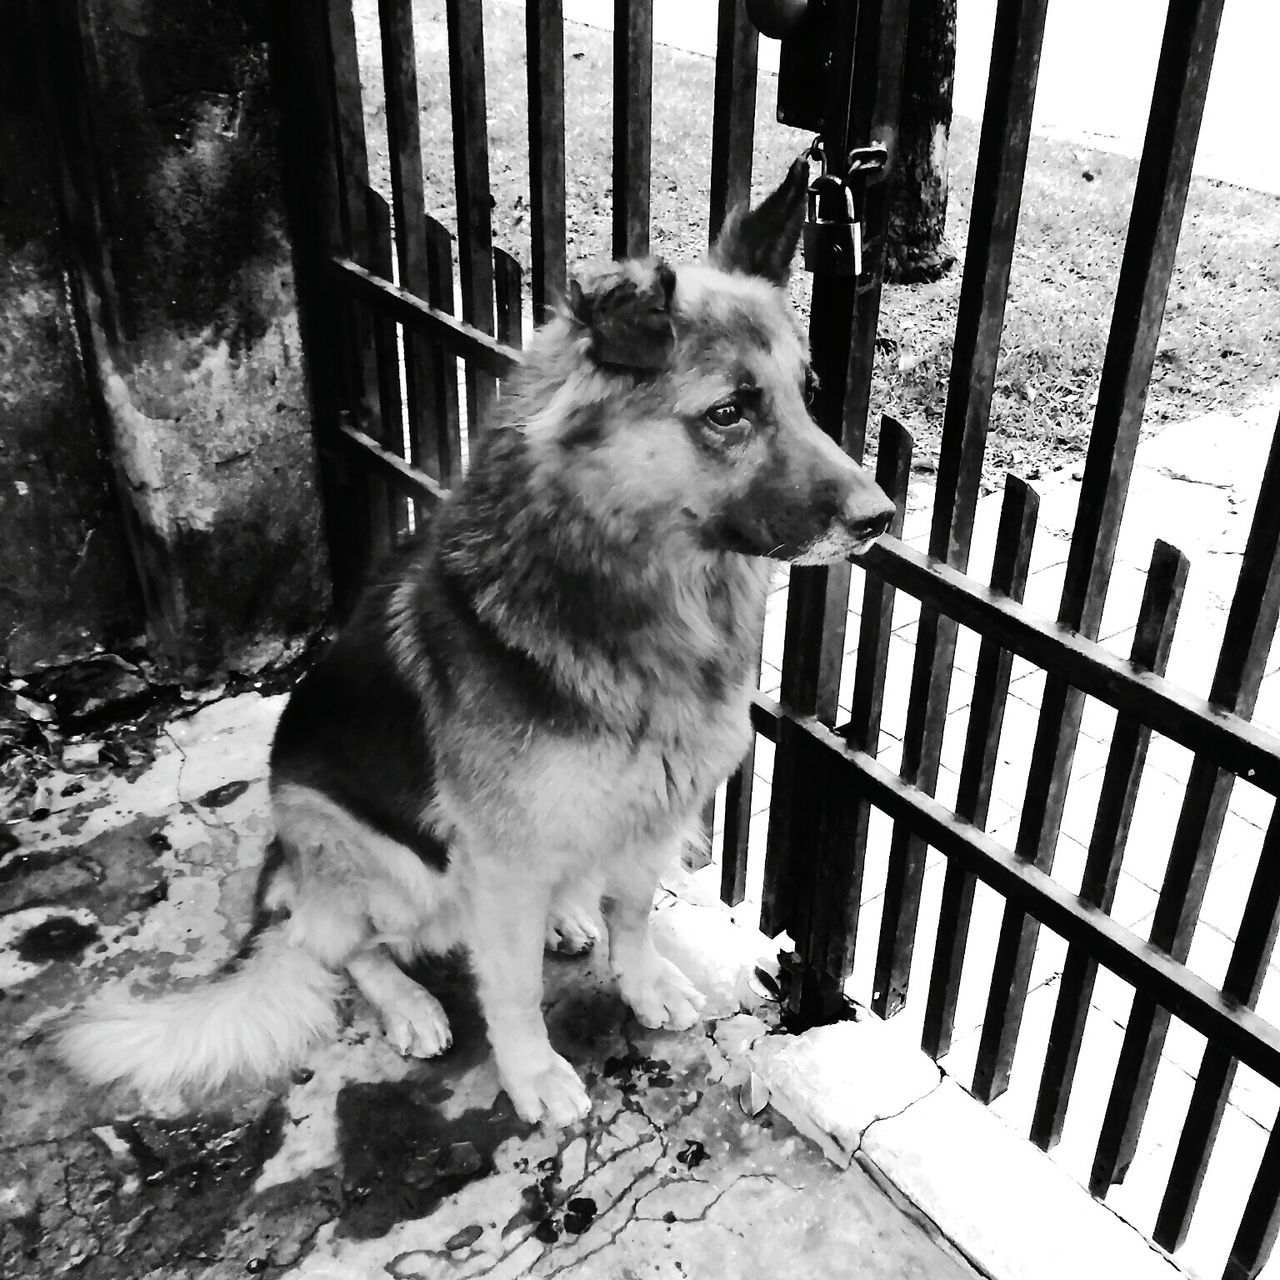 domestic animals, animal themes, pets, dog, one animal, railing, mammal, no people, day, outdoors, close-up